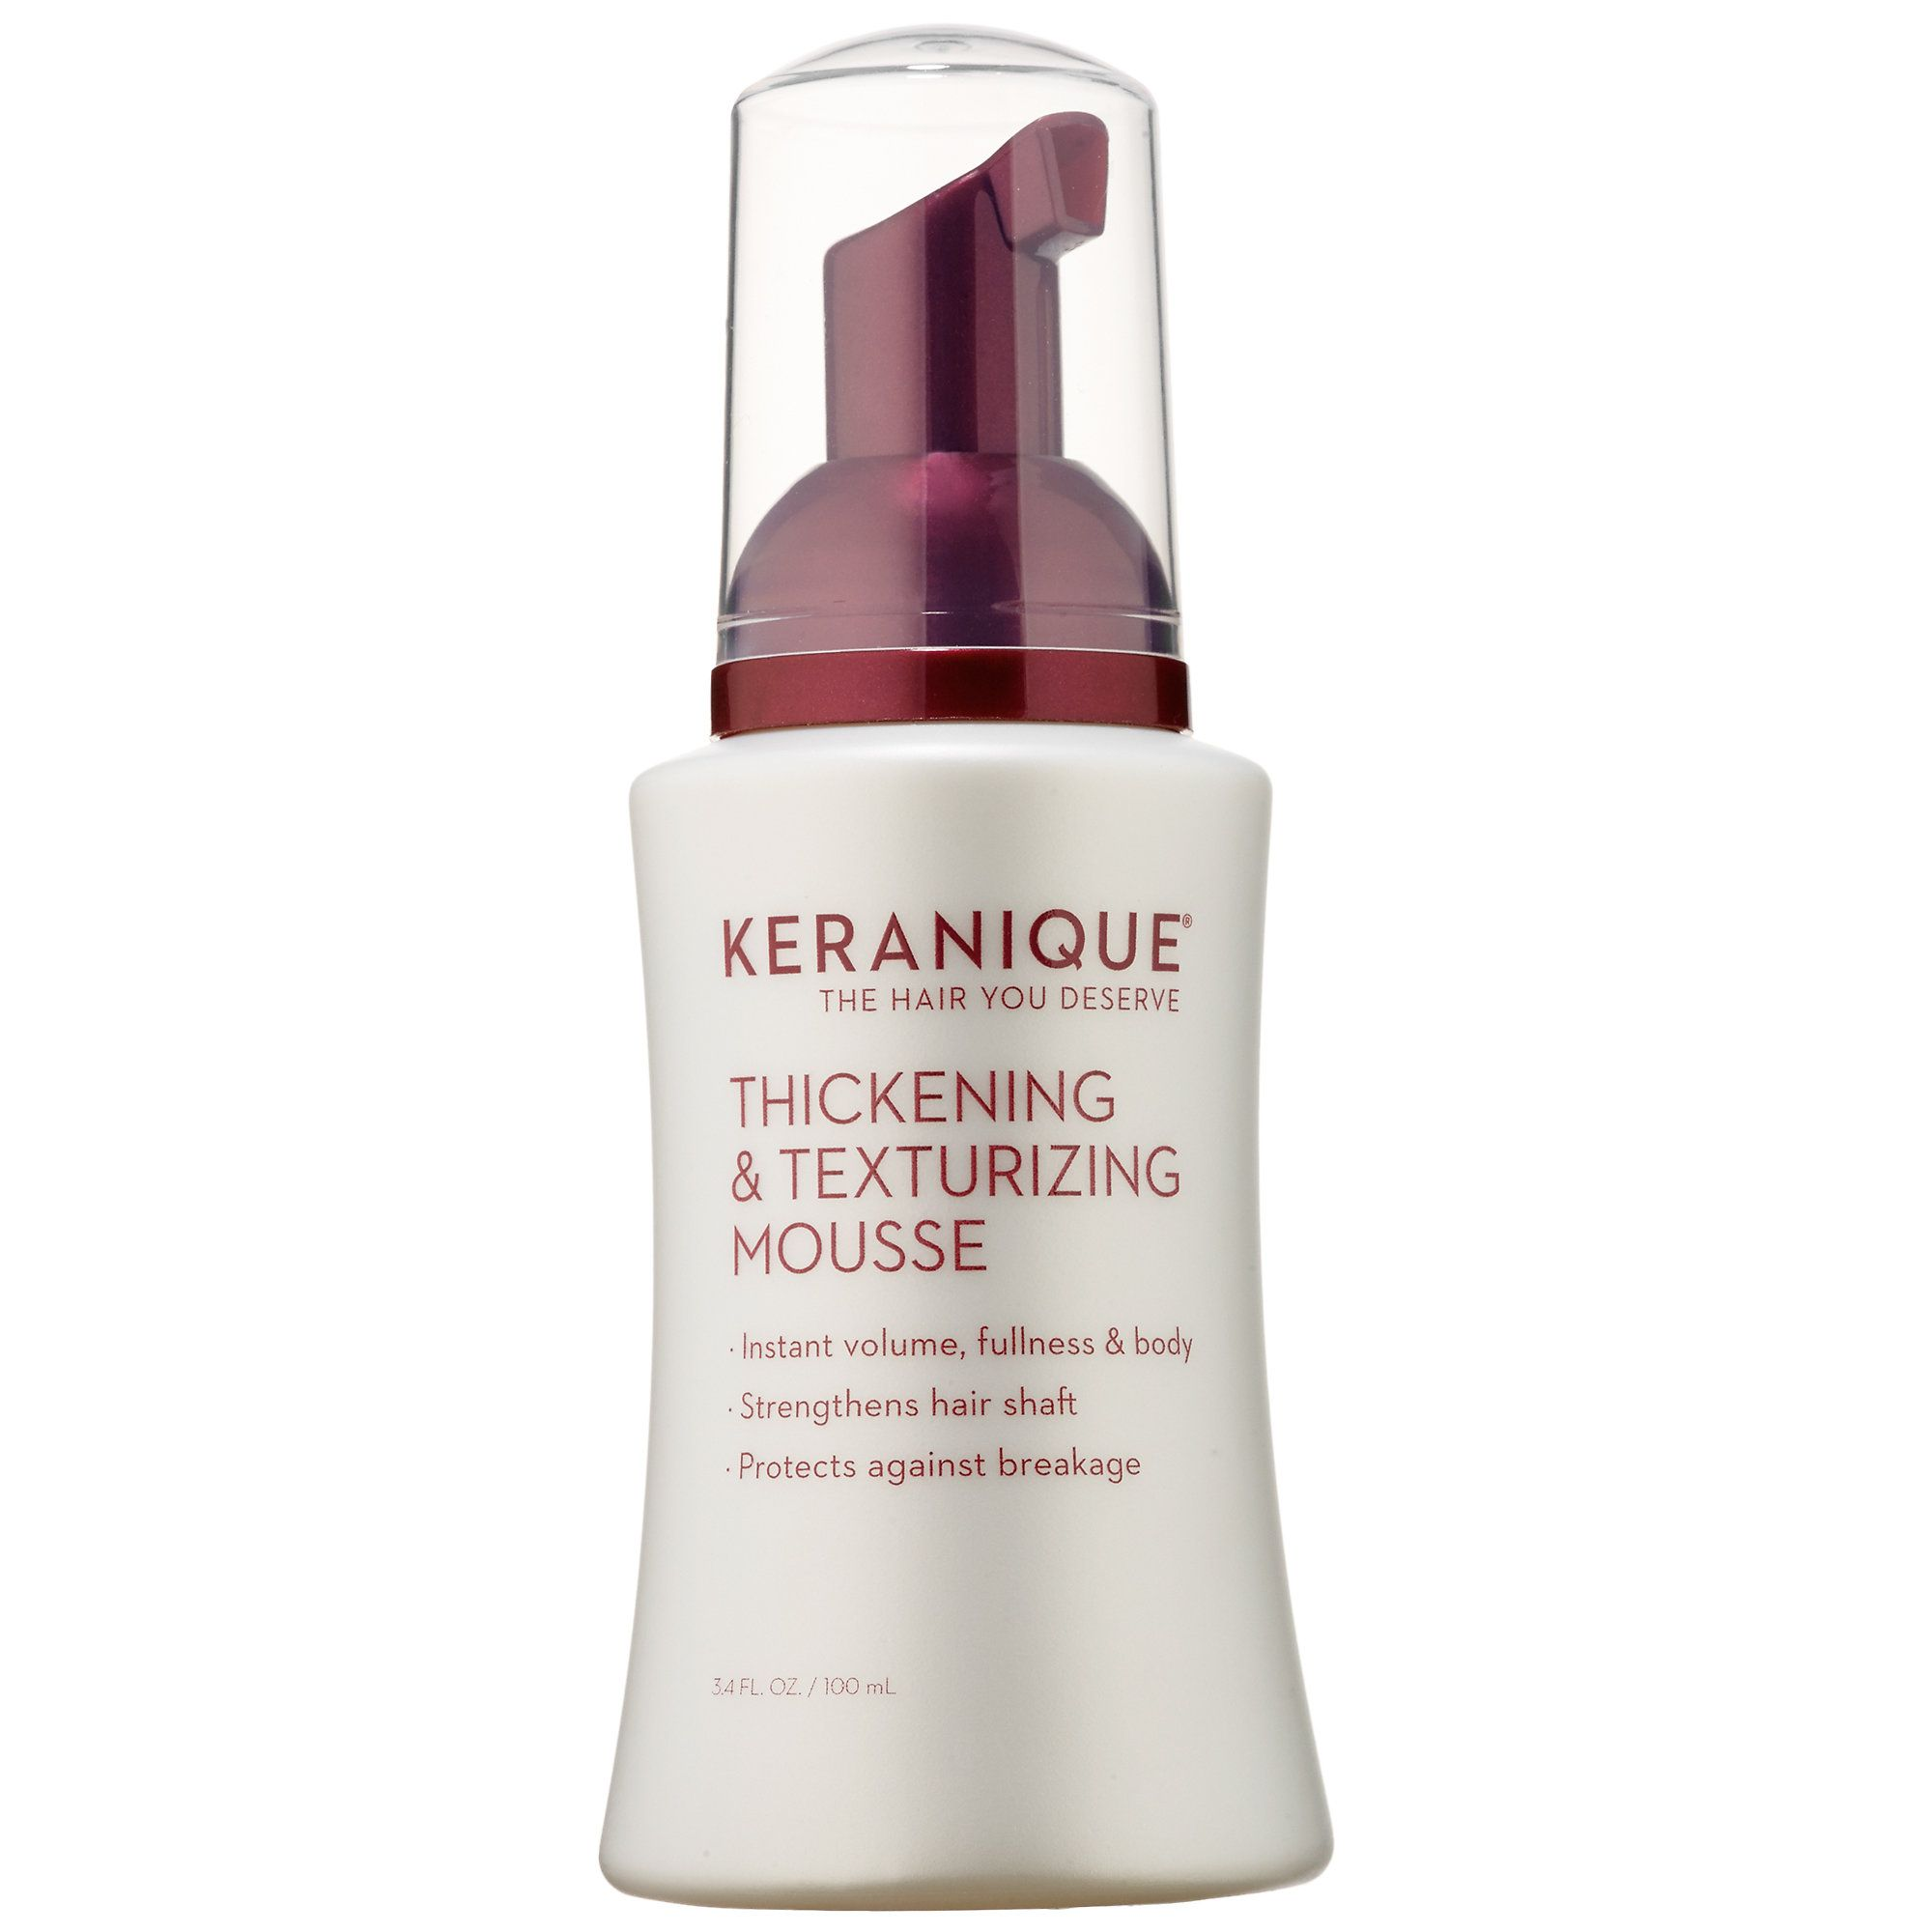 Shop Keranique Thickening u Texturizing Mousse at Sephora This